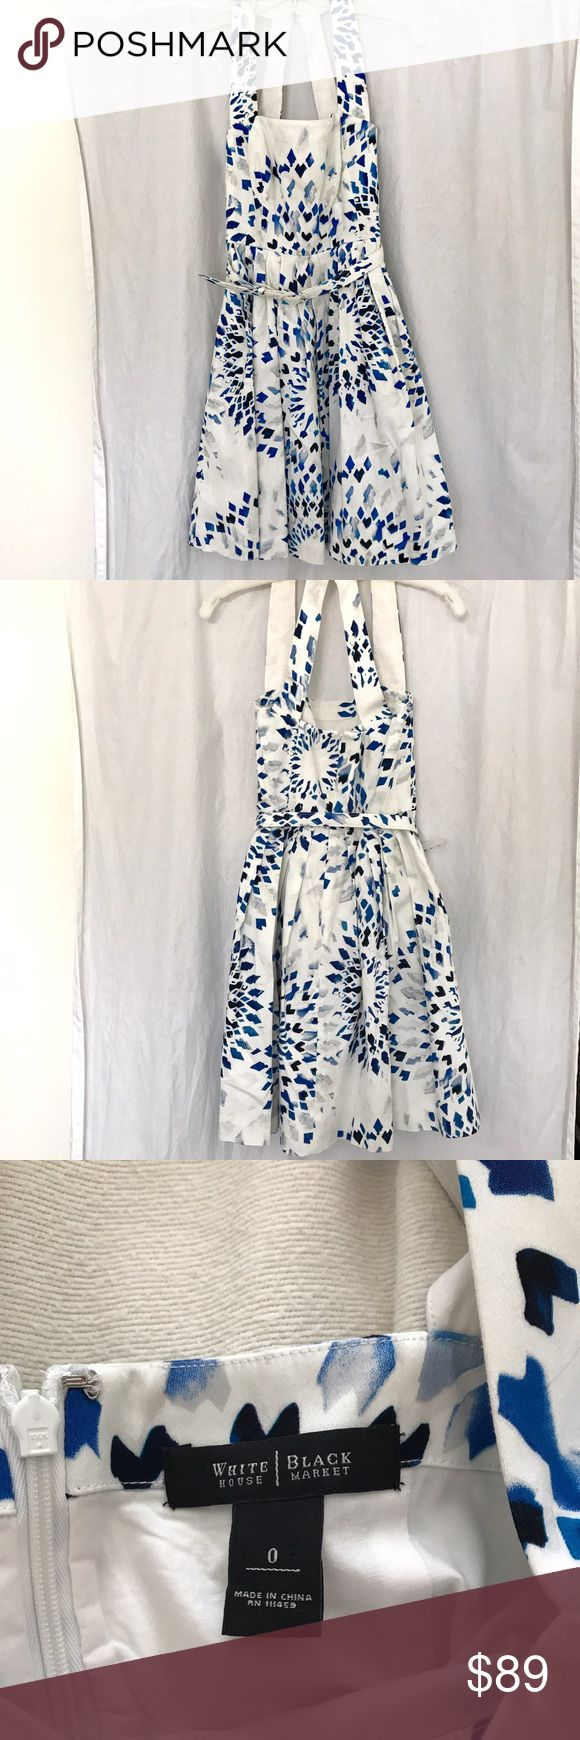 White House Black Market Dress Blue and White WHBM Dress Blue and White Pattern Size 0. See last photo for approximate measurements. One stain on the side (pictured) and some makeup transfer on the inside of the neck pieces (also pictured). Matching belt (also size 0) included. MAKE ME AN OFFER White House Black Market Dresses Midi